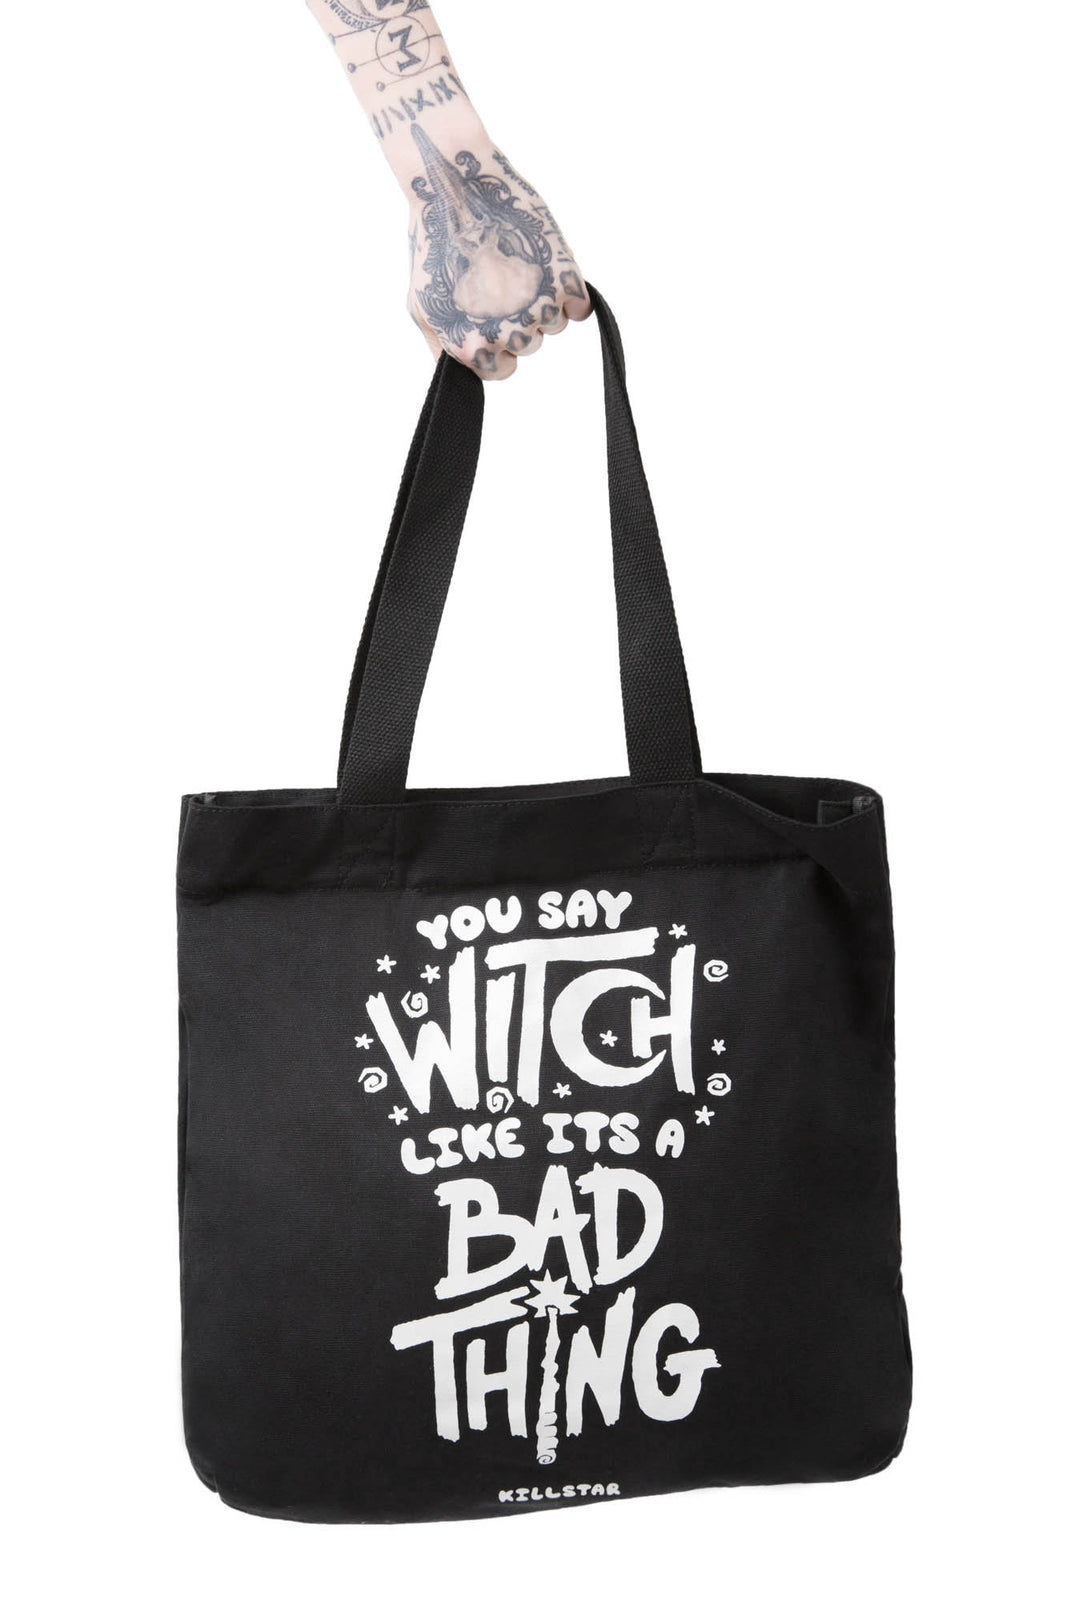 Who's Bad Tote Bag [B]